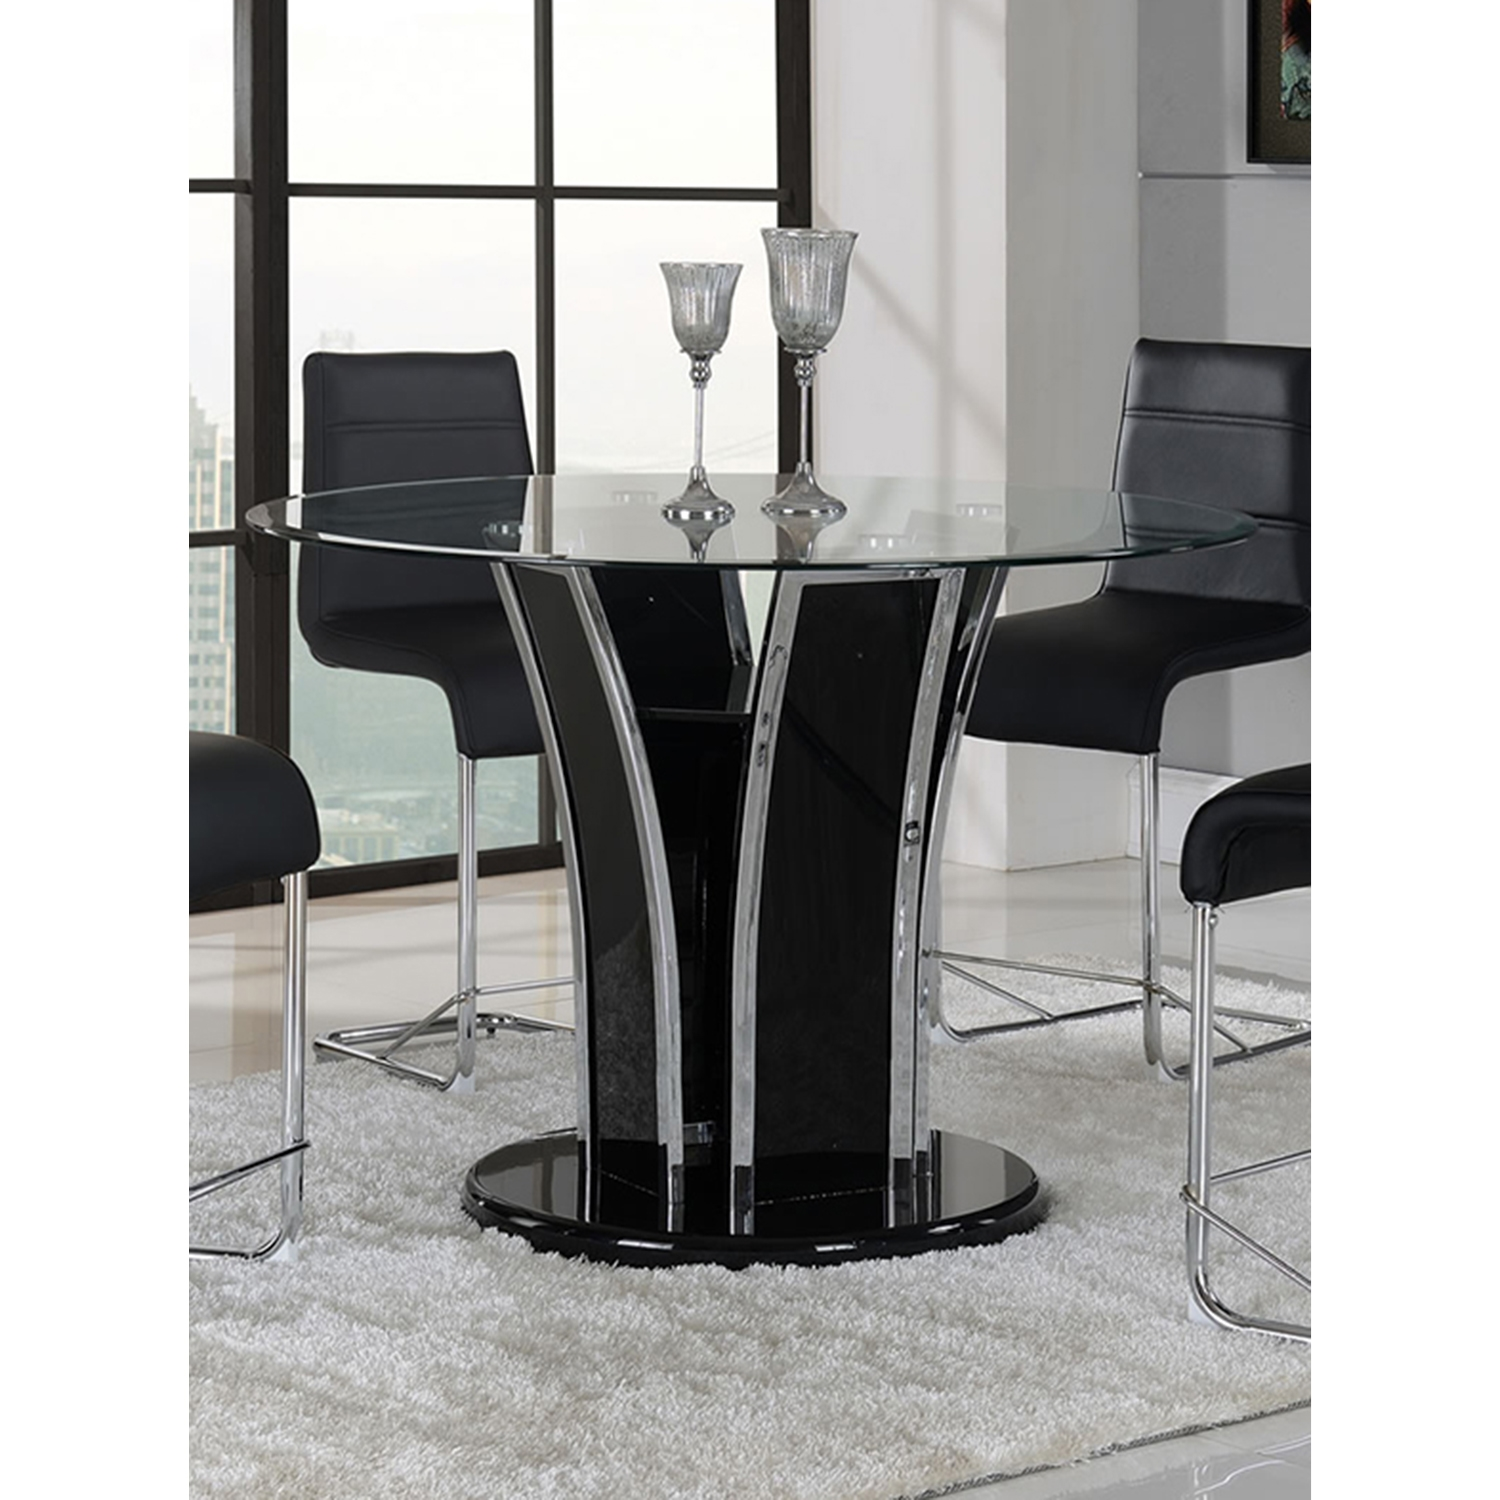 Sophie 5-Piece Counter Height Dining Set - Black - GLO-D1086BT-D1086BS-M-SET